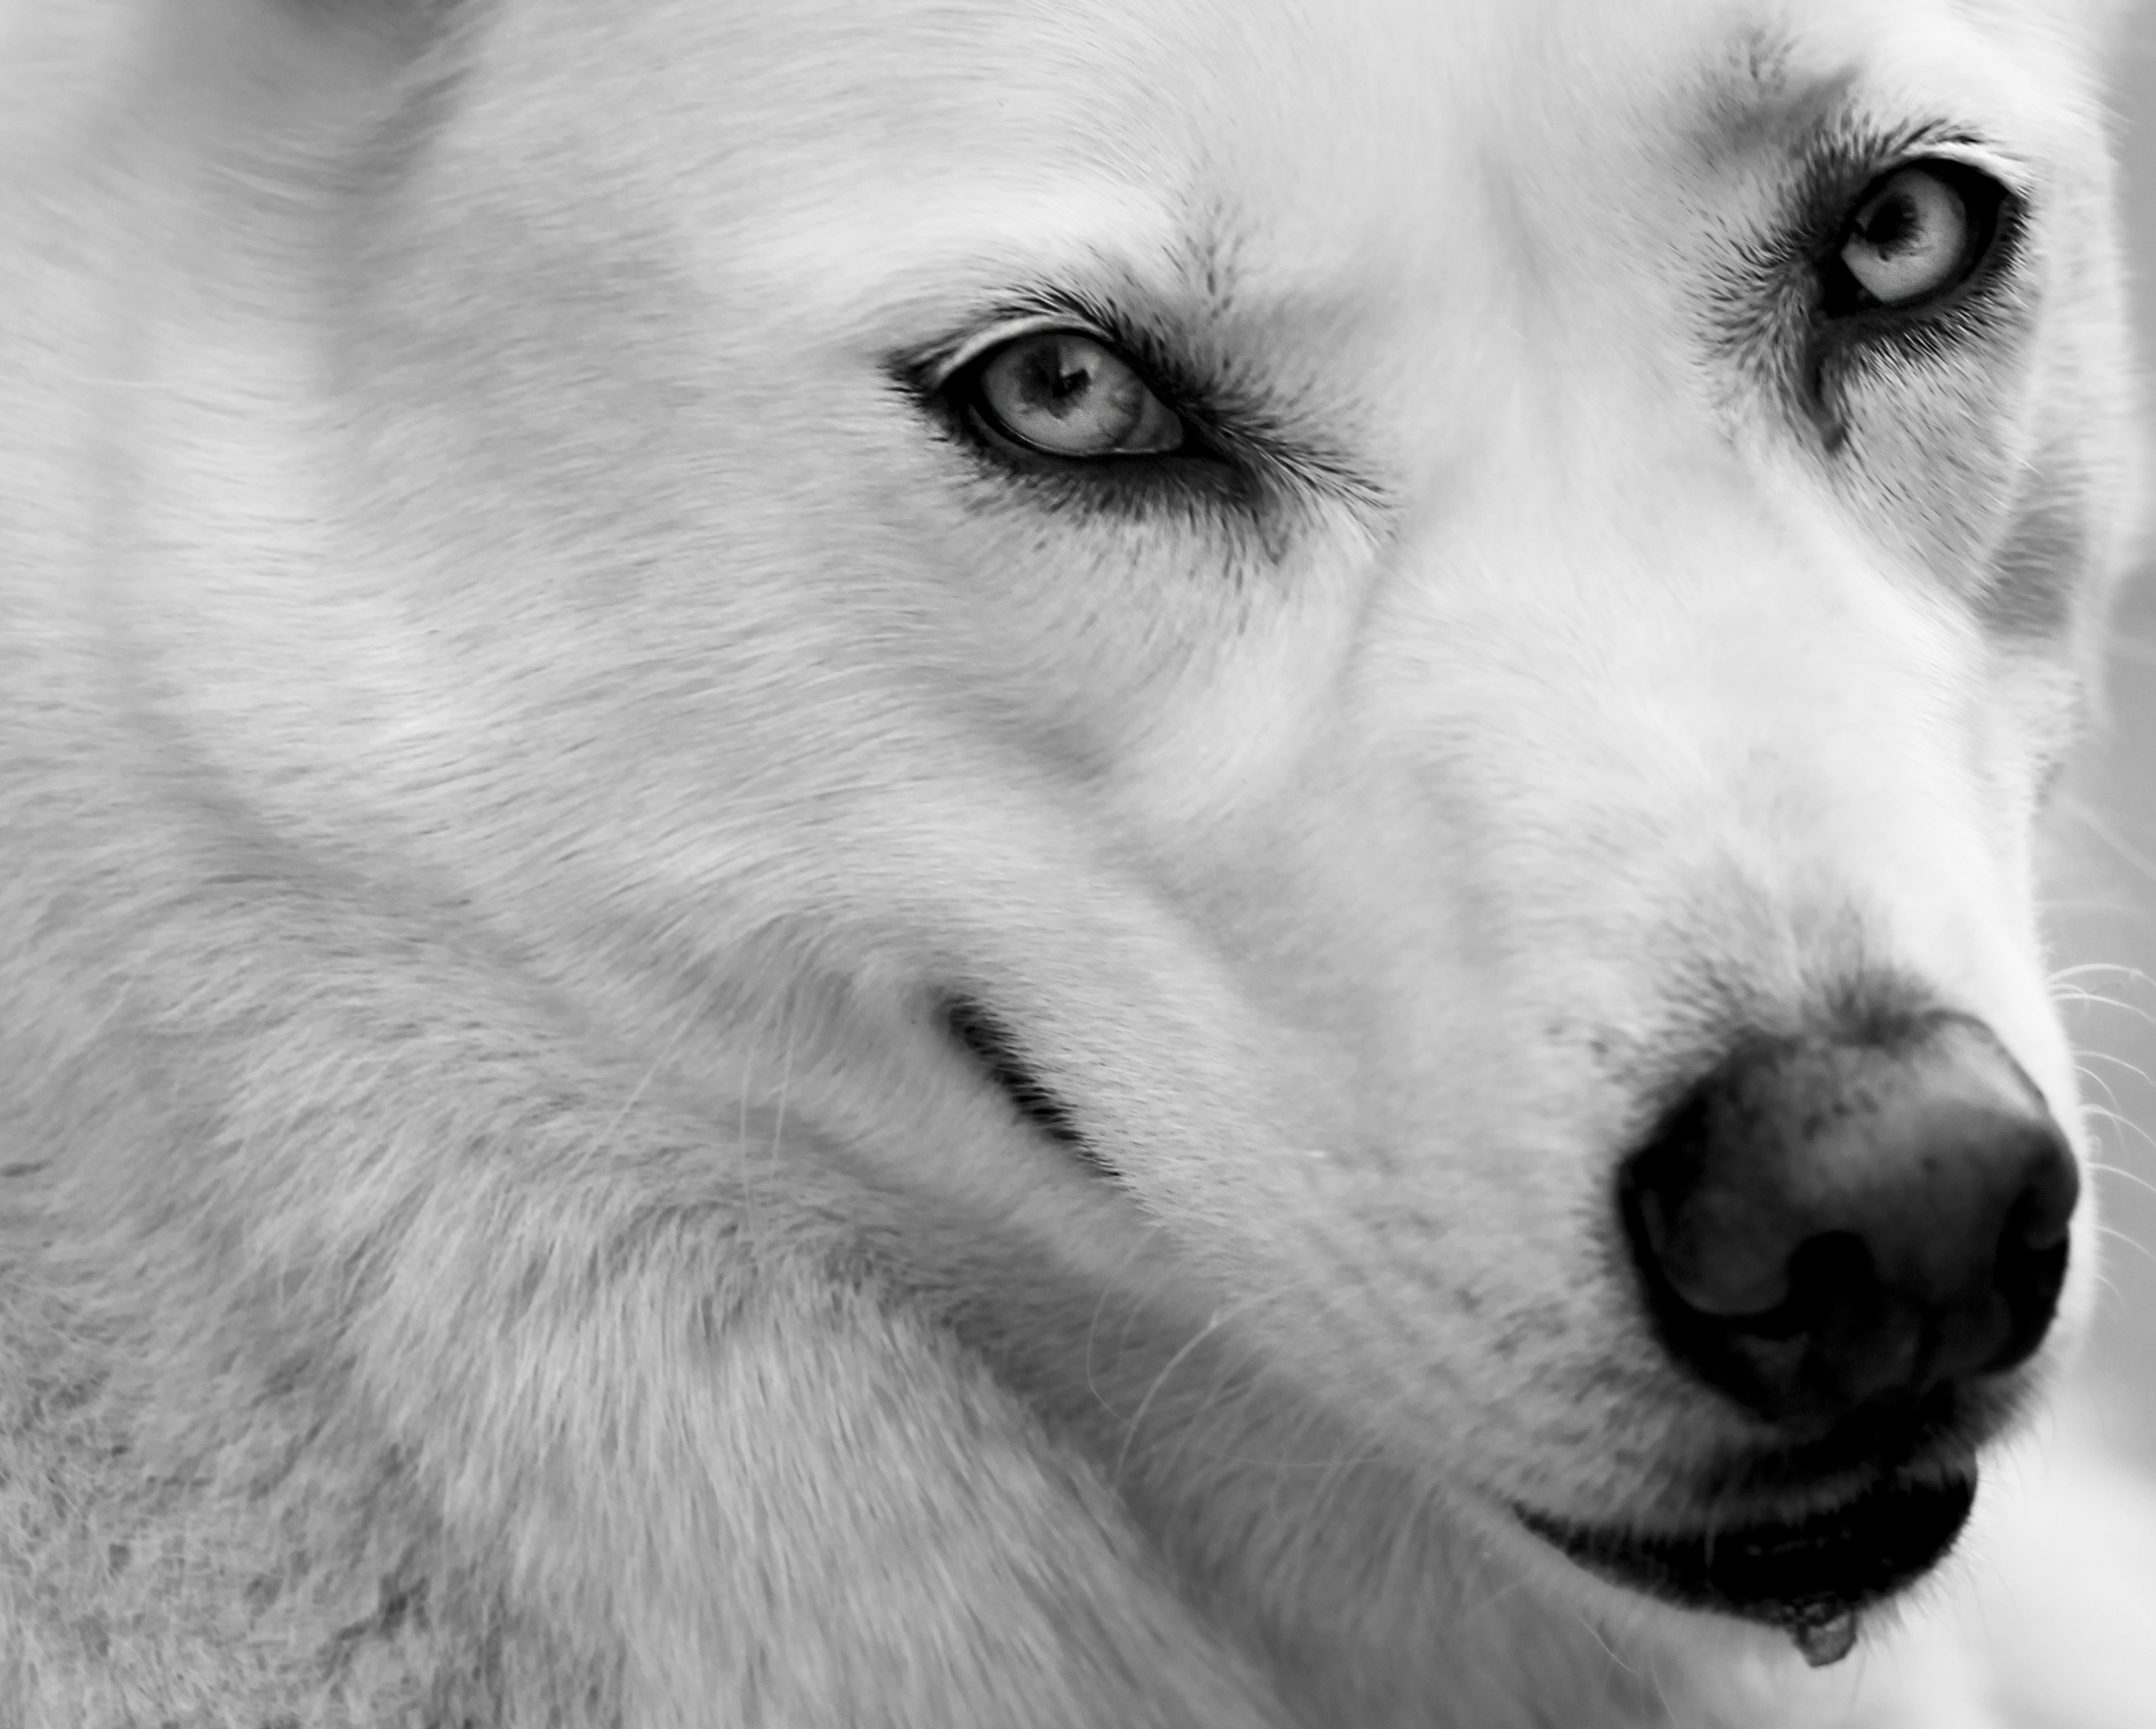 IMG_3907_connah's_dog_2_crop_2_bw_a.jpg